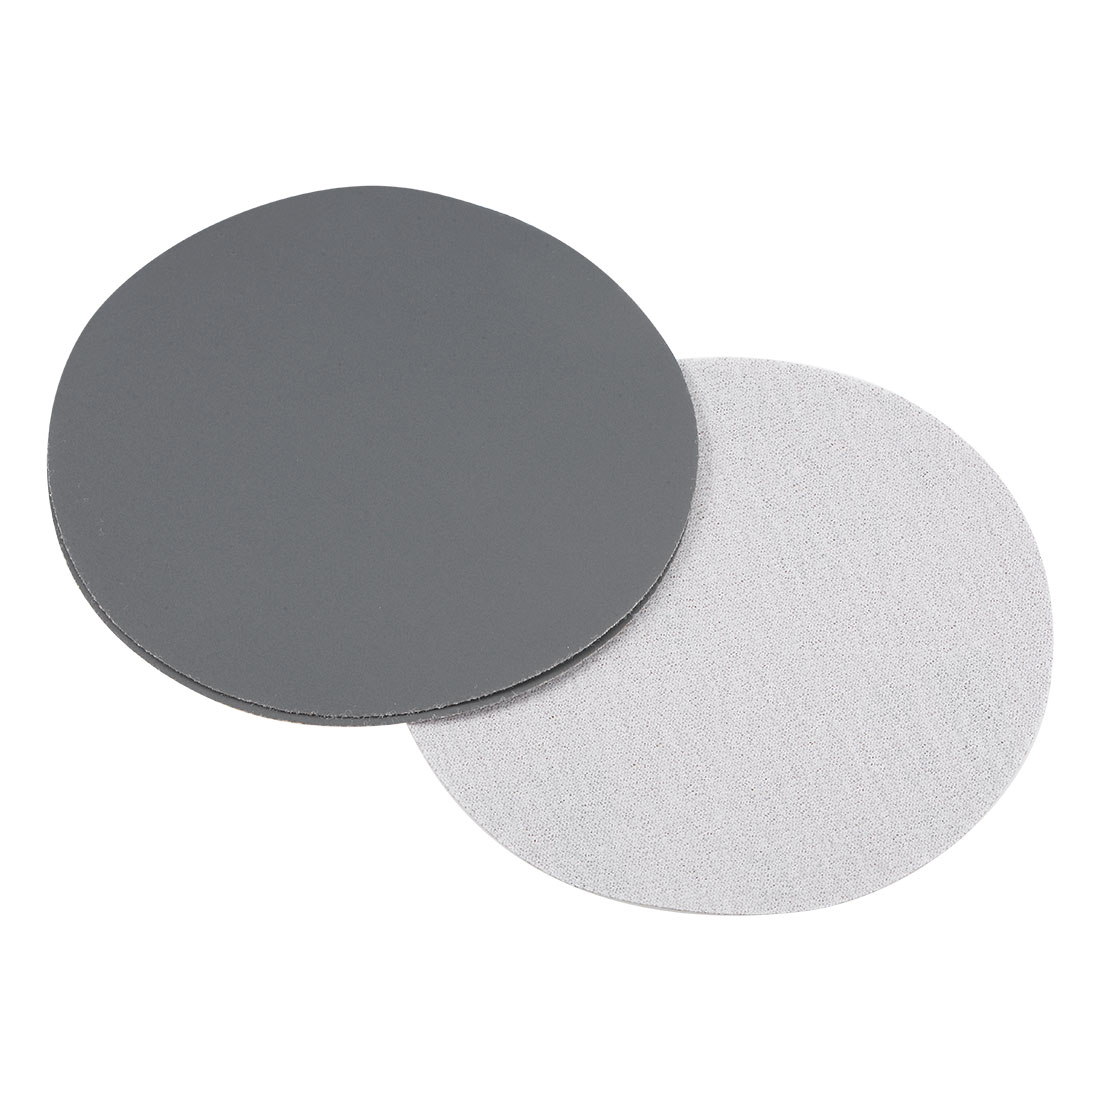 5 inch Wet Dry Discs 1500 Grit Hook and Loop Sanding Disc Silicon Carbide 3pcs